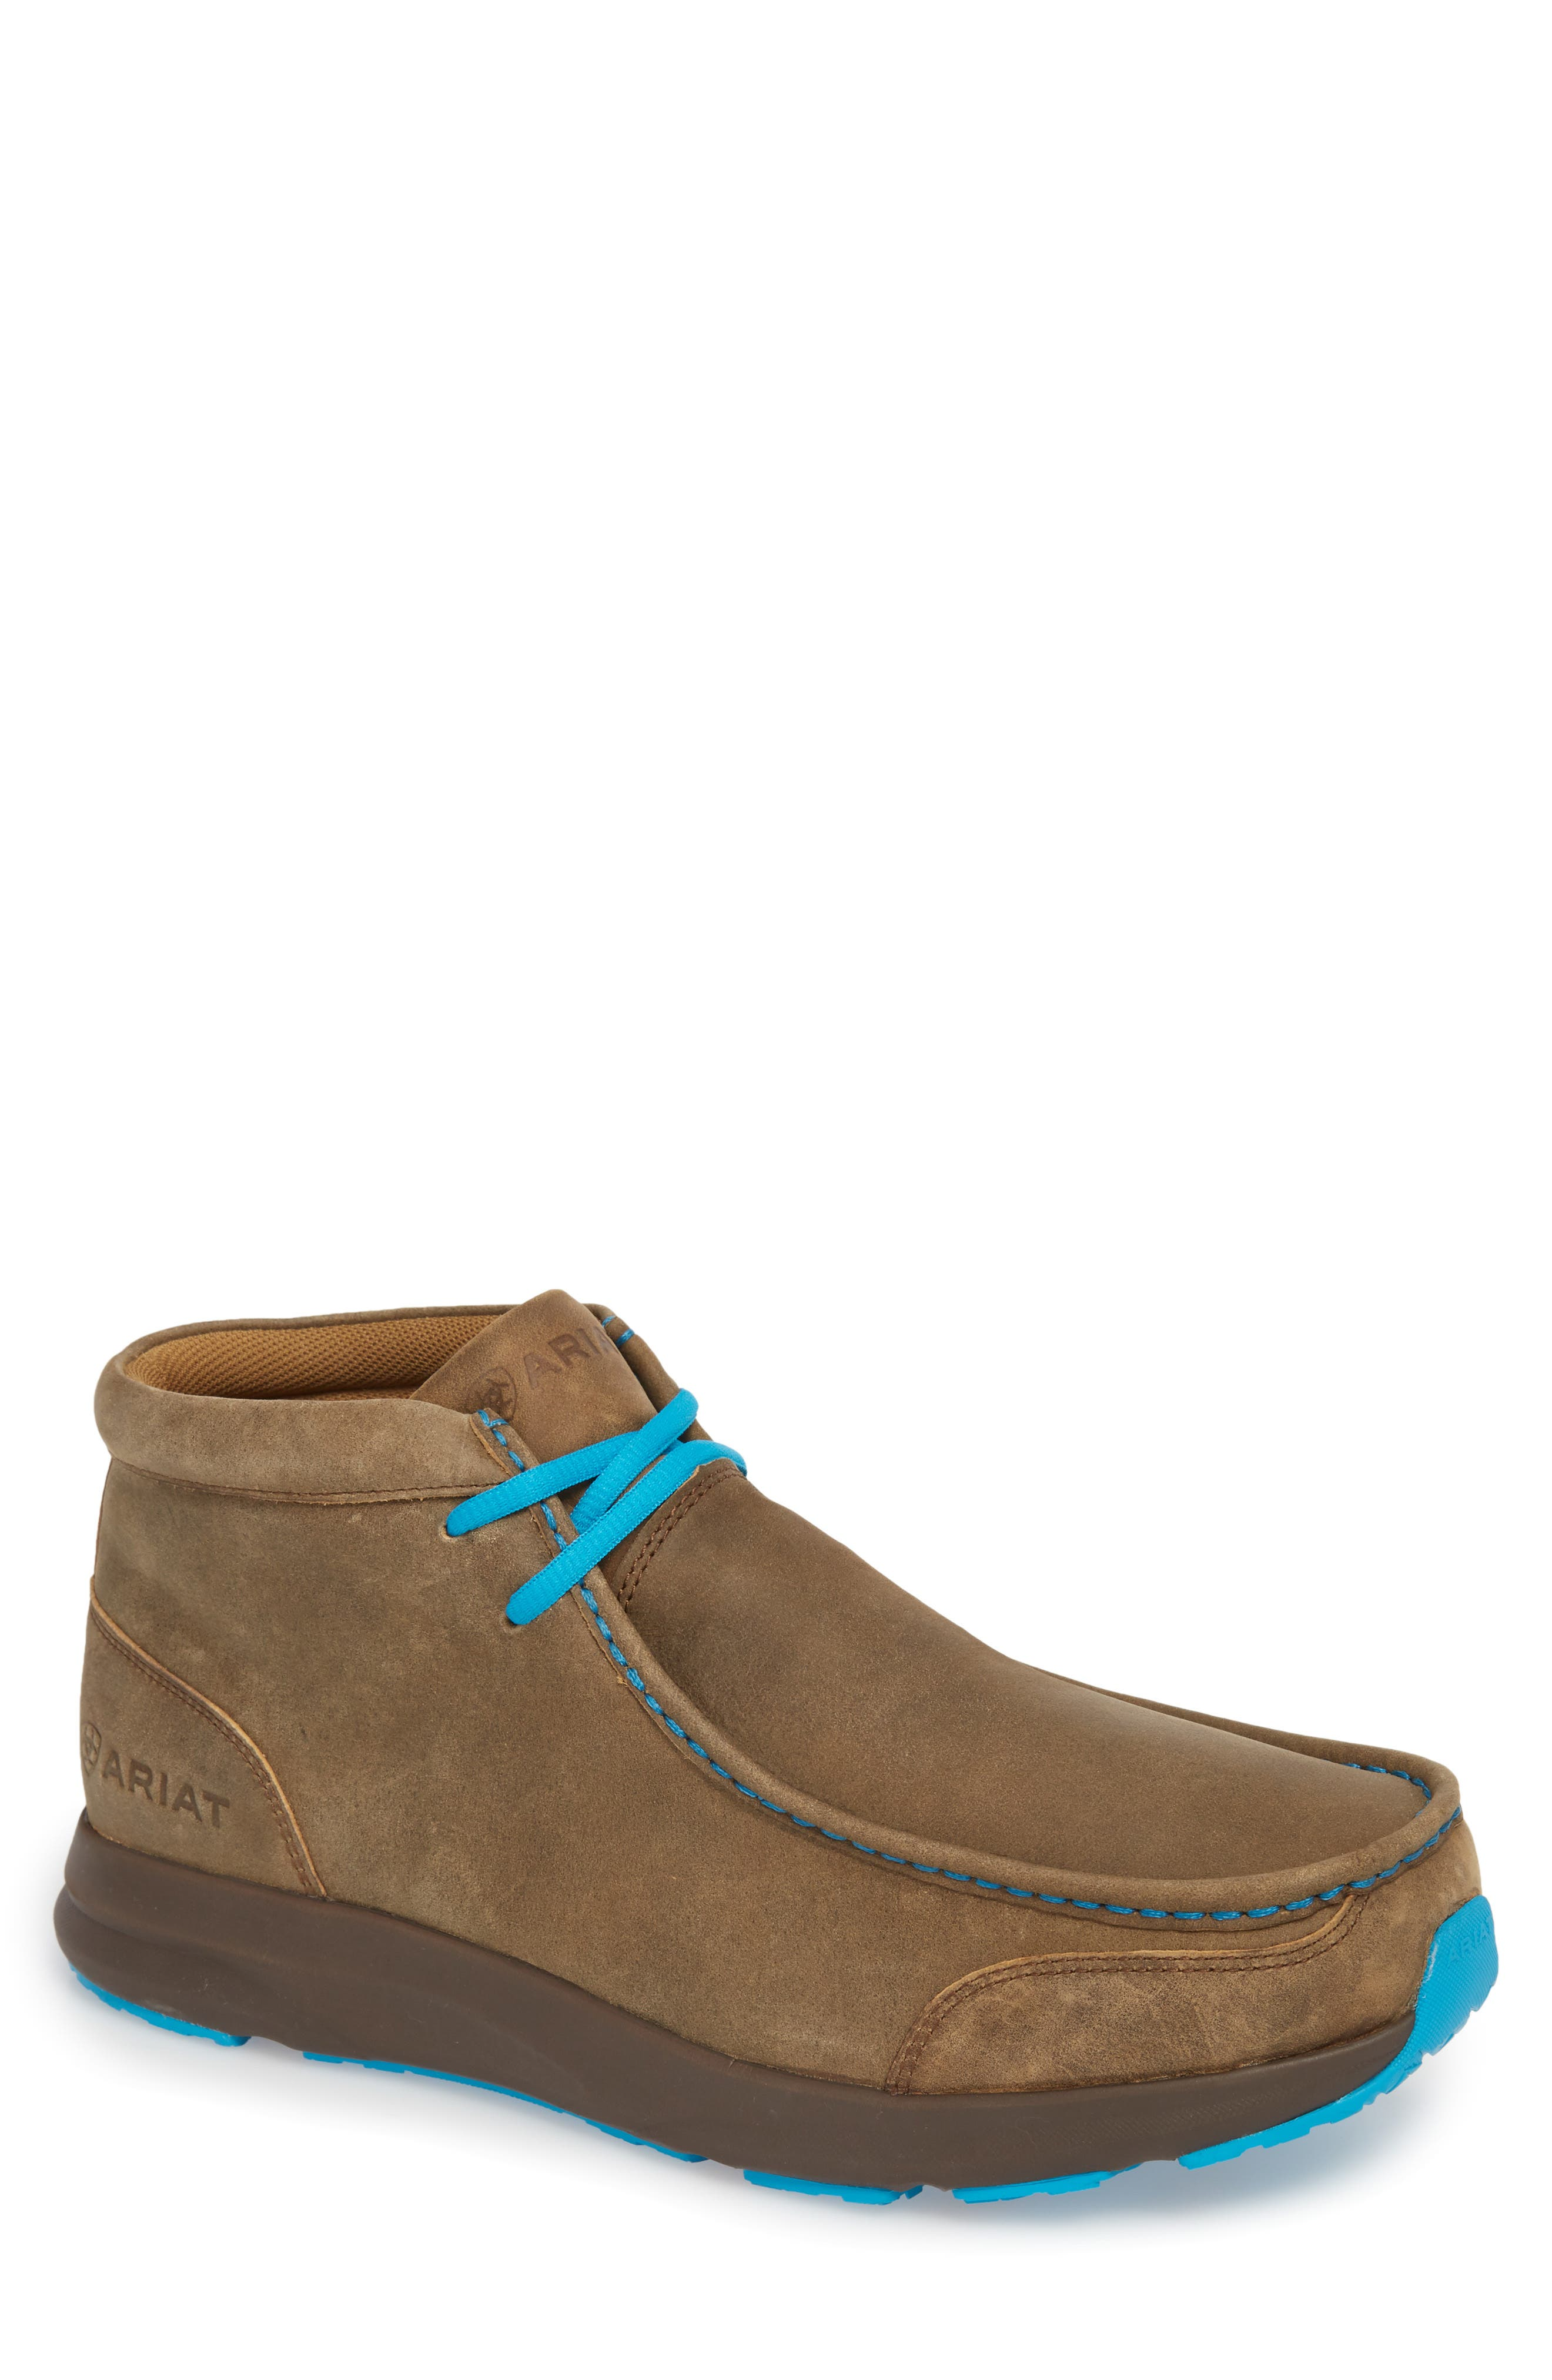 ARIAT Spitfire Chukka Boot, Main, color, BROWN BOMBER/ BLUE LEATHER